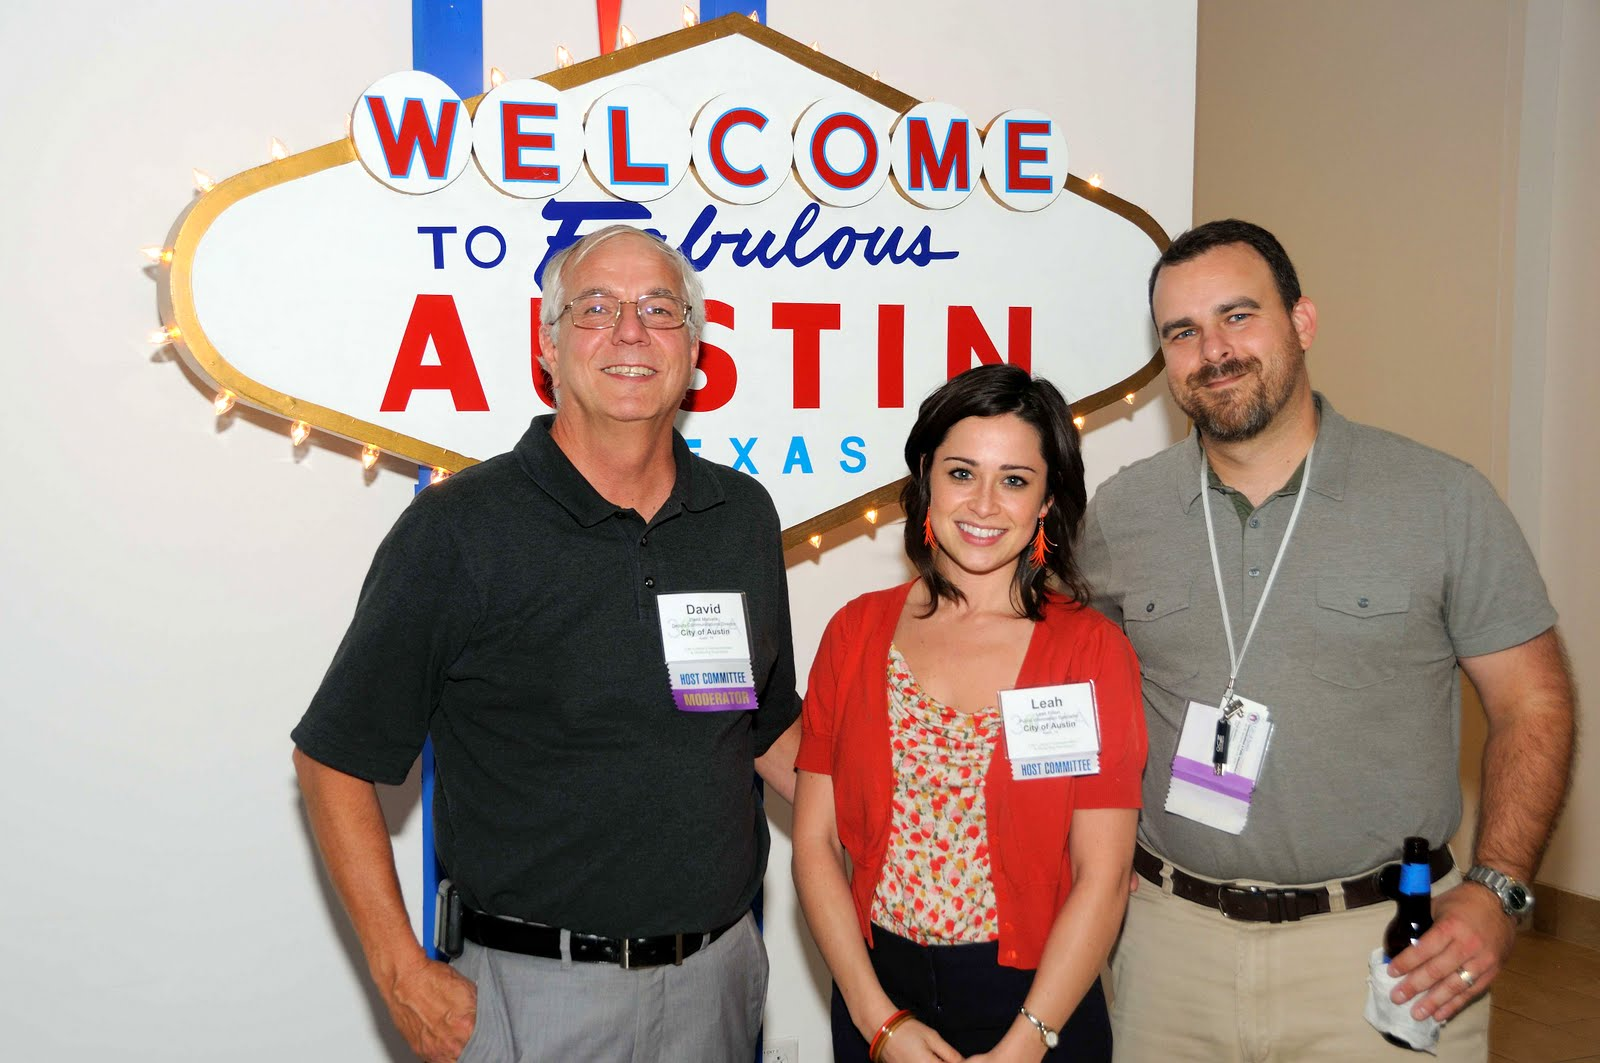 David Matustik, Leah Fillion and Doug Matthews - City of Austin, TX